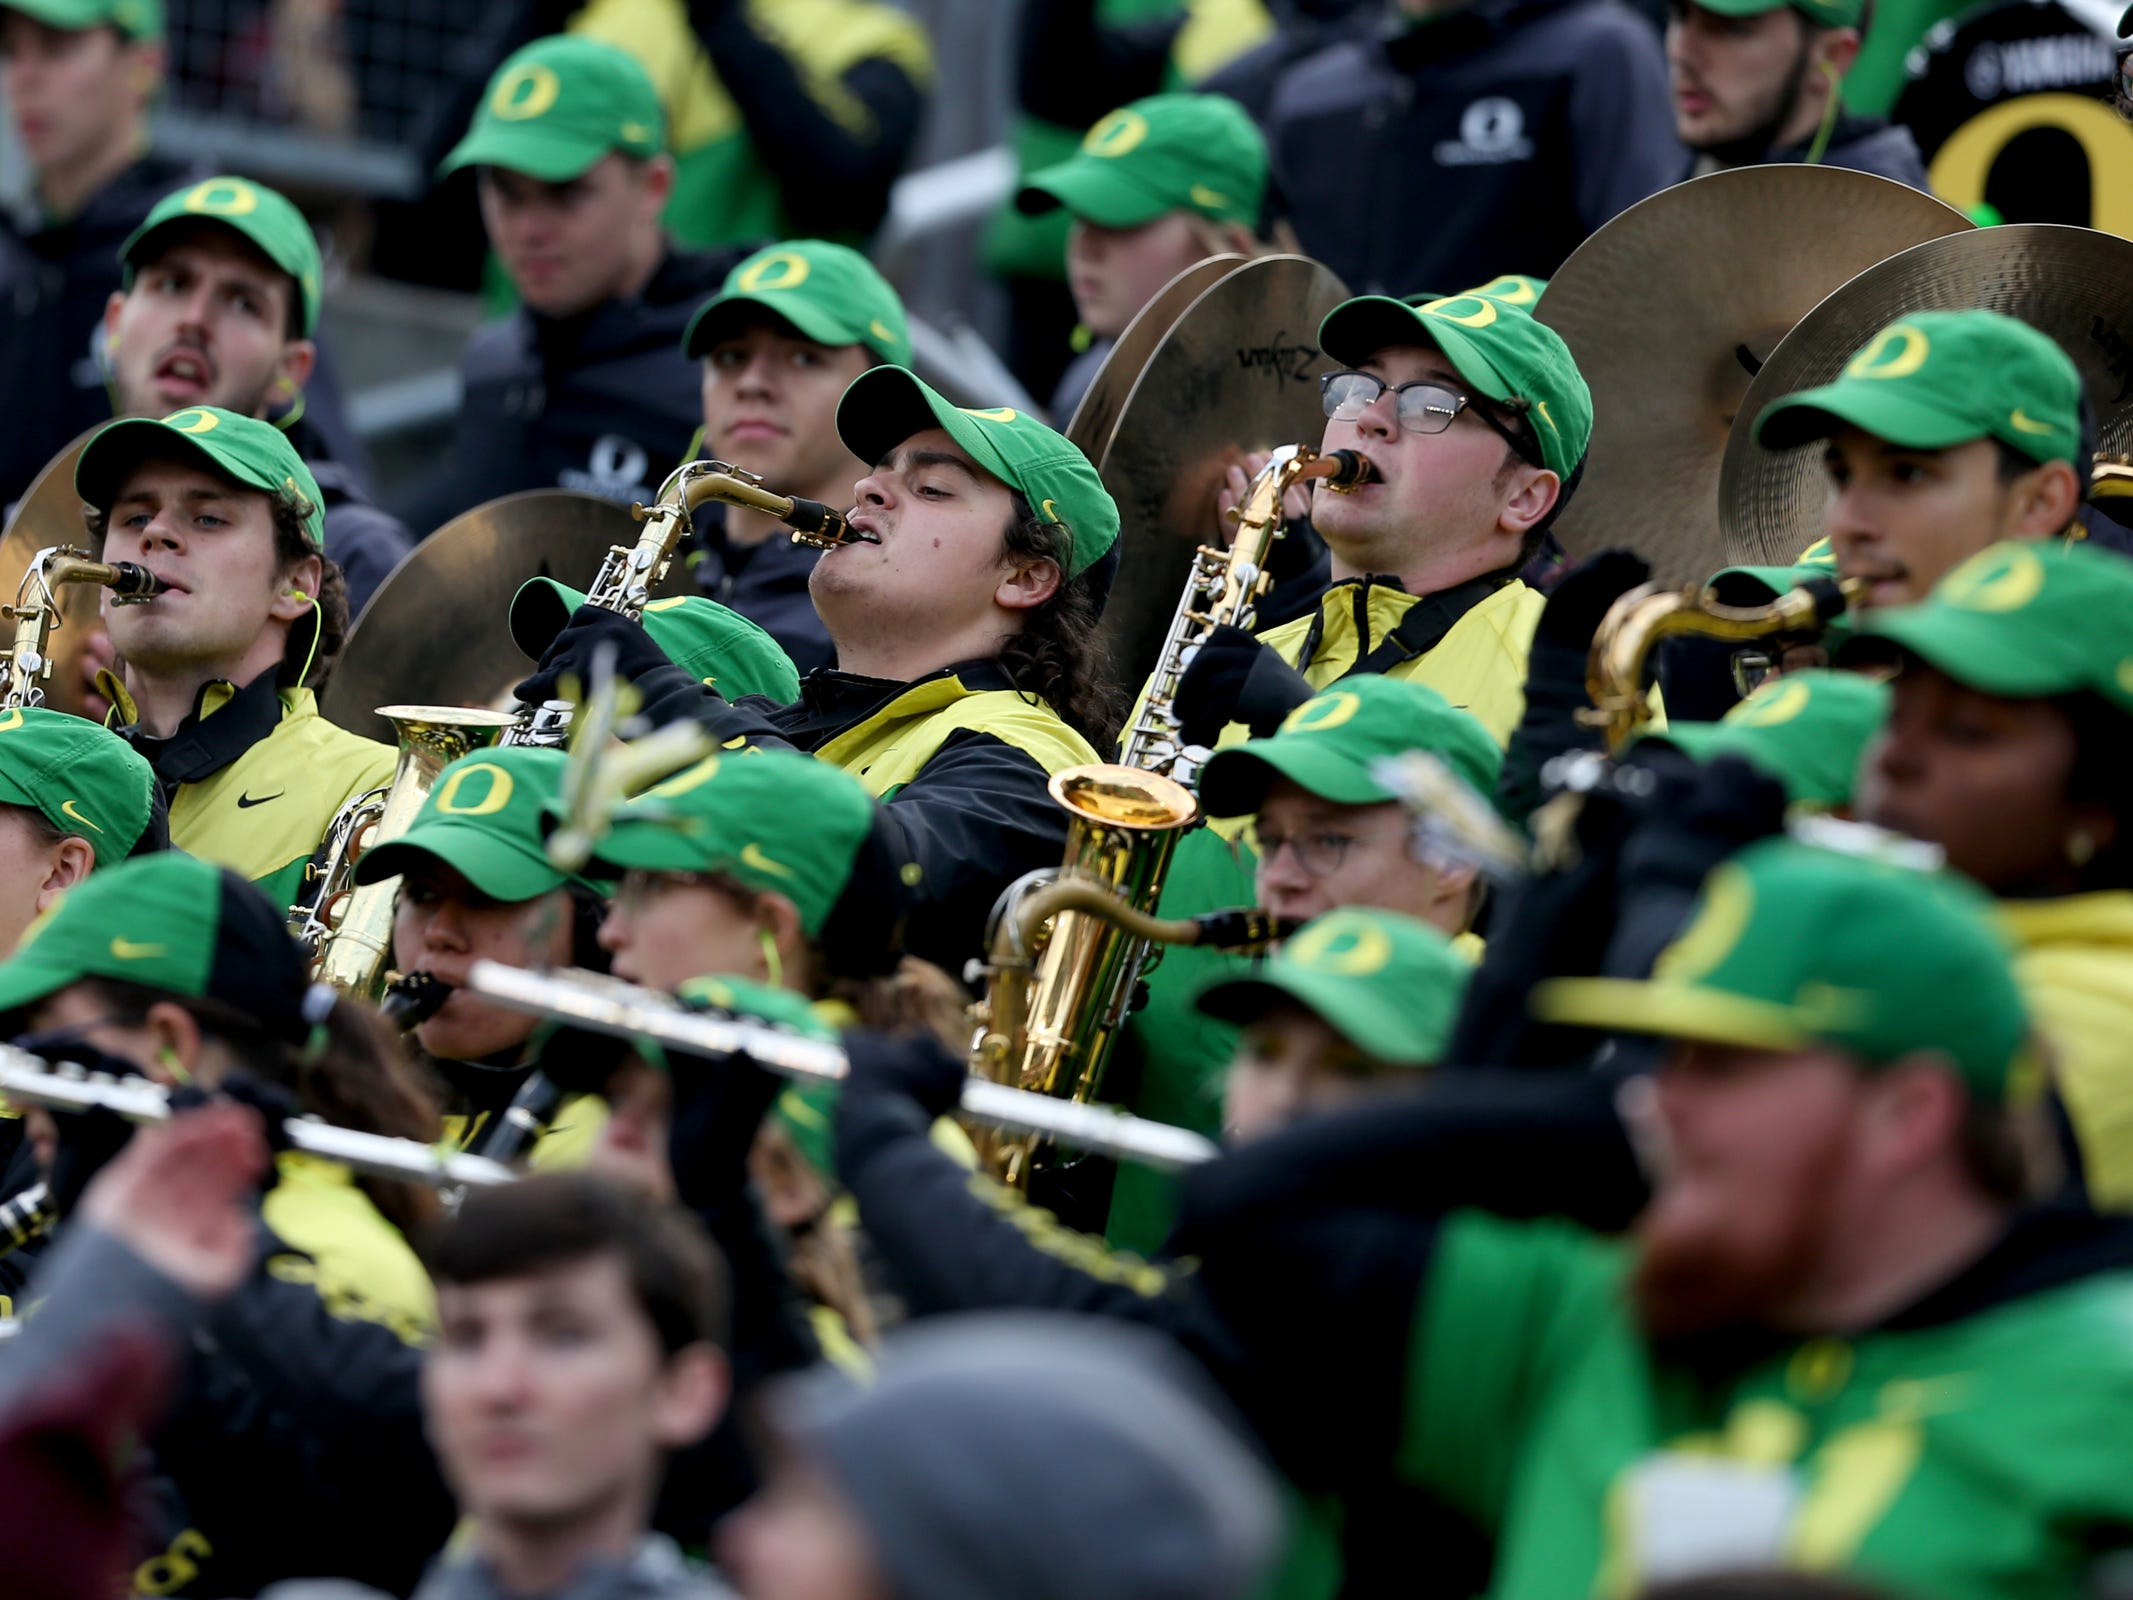 The Oregon band performs in the Oregon vs. Oregon State Civil war football game at Oregon State University in Corvallis on Friday, Nov. 23, 2018.